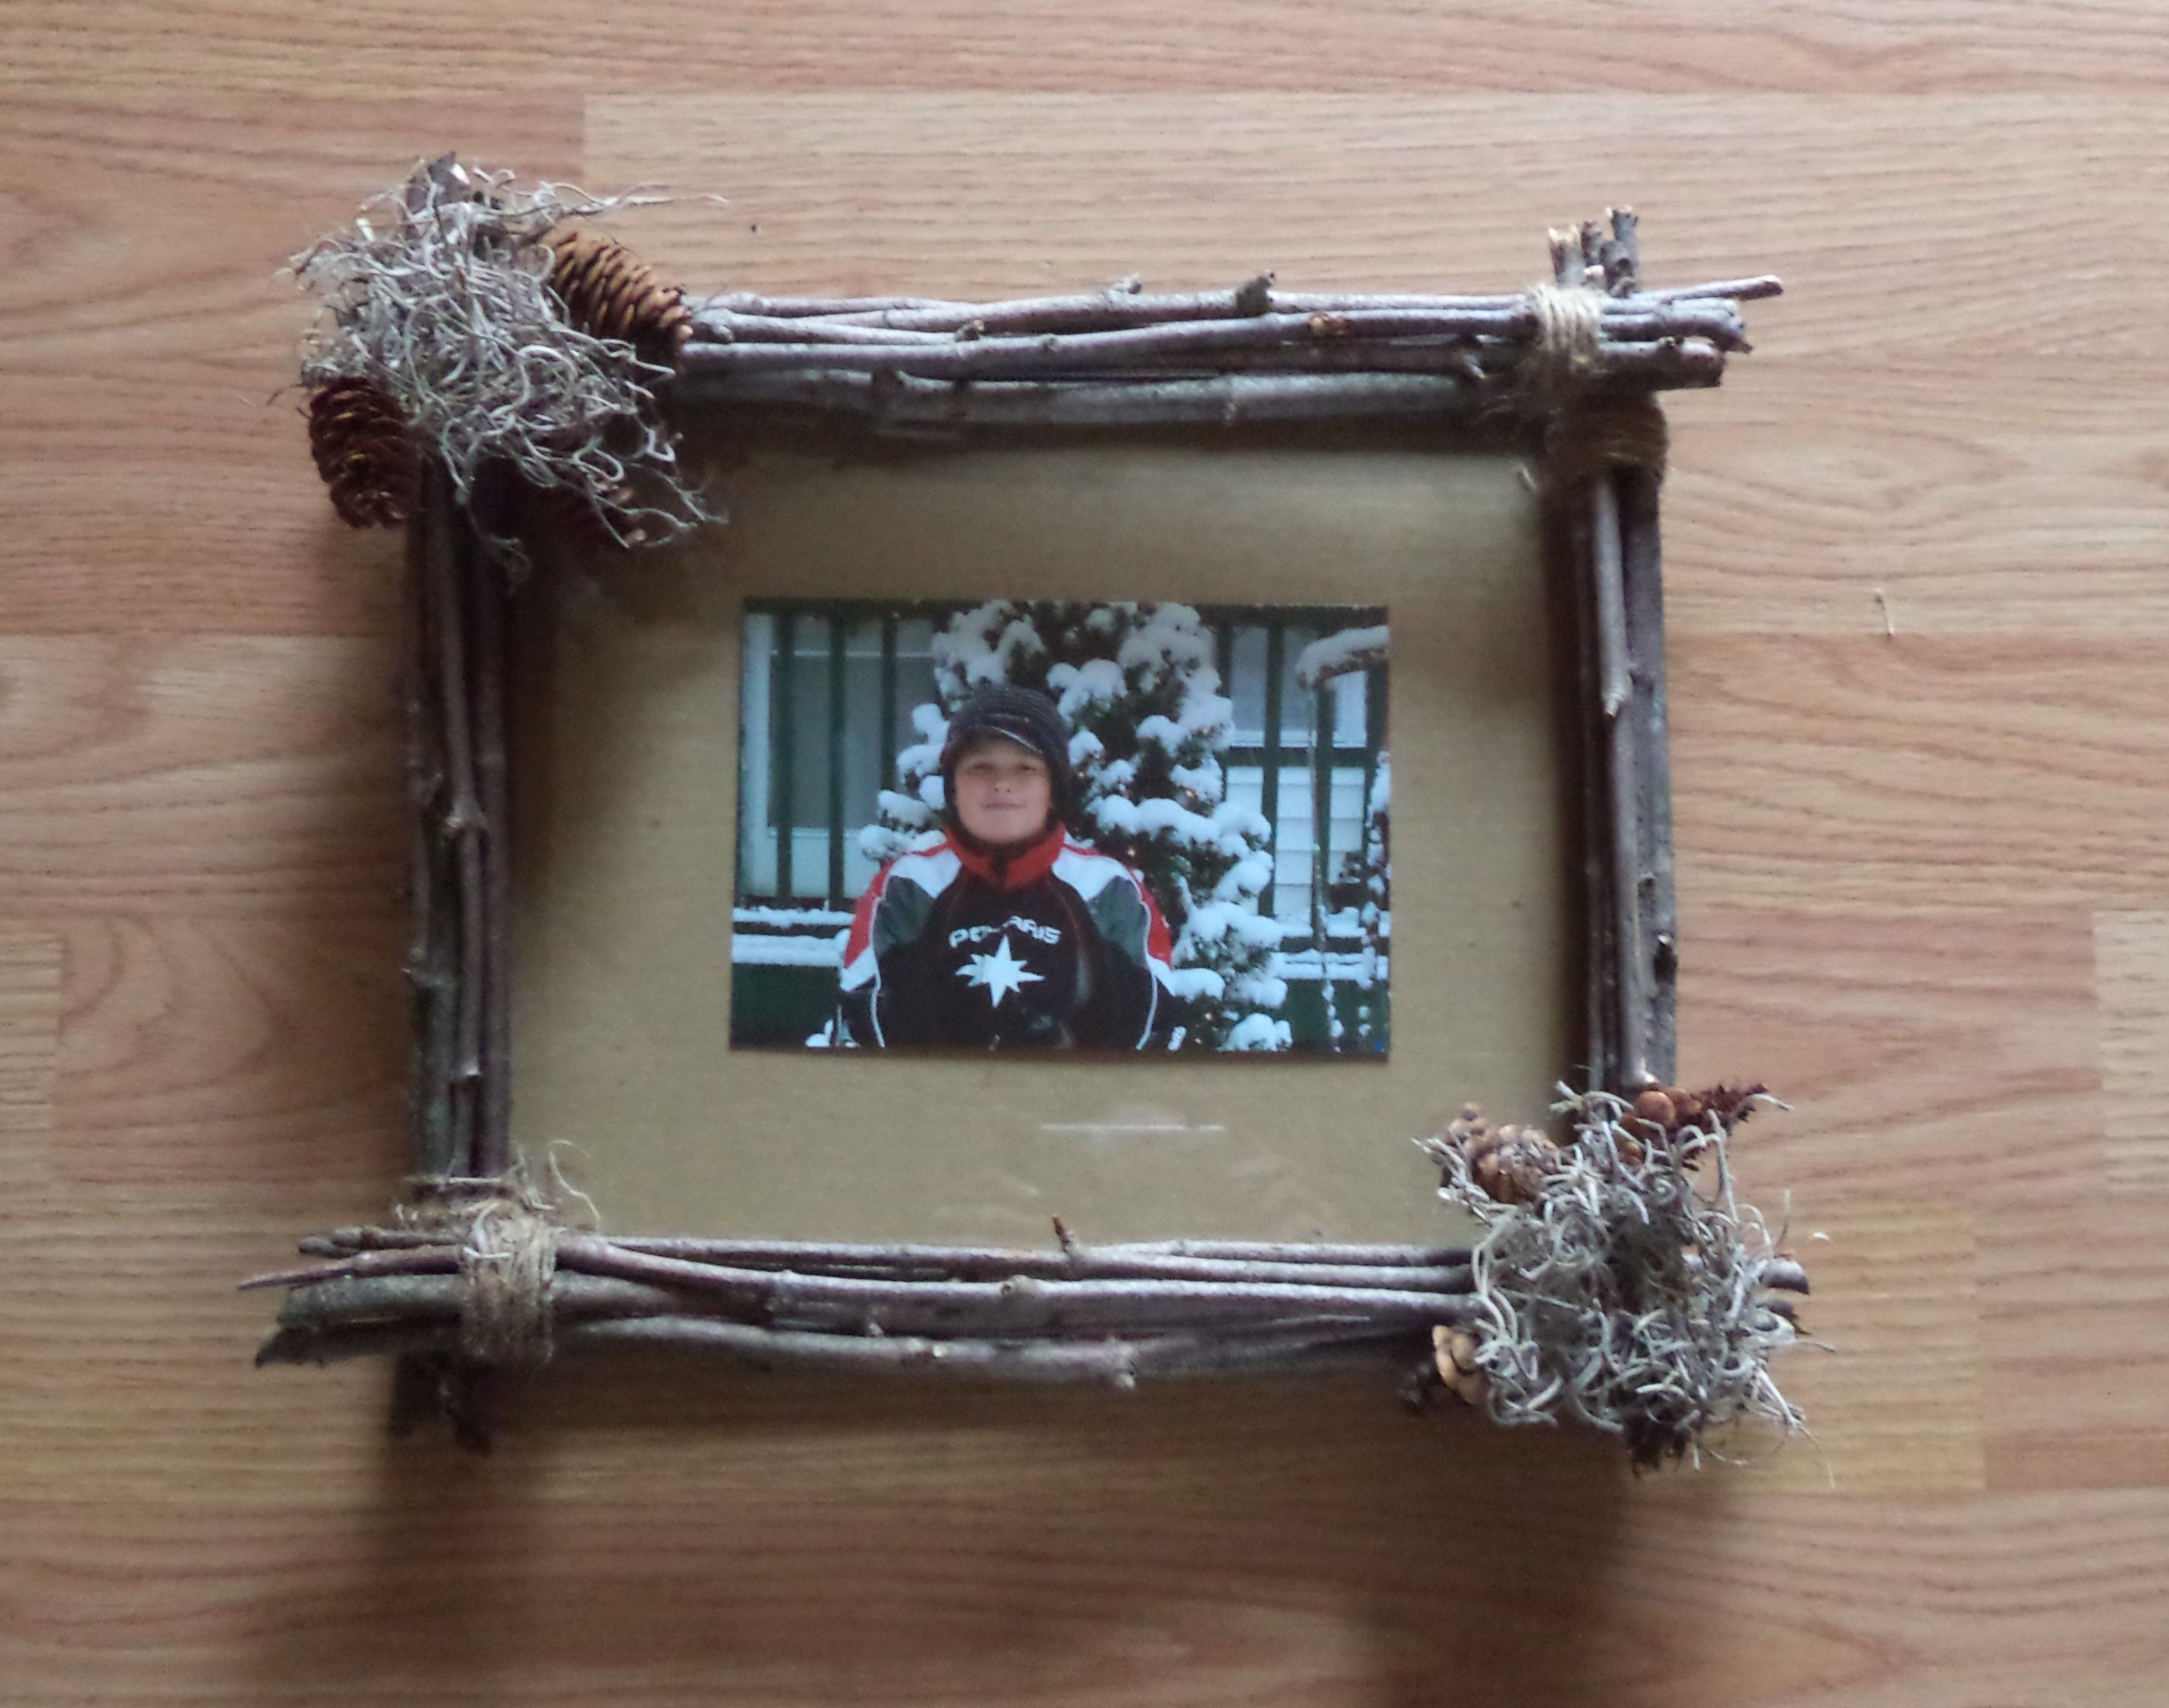 twig picture frame twigs sticks twine frame pinecones and twig picture frame twigs sticks twine frame pinecones and decor craftsrustic homesnailed